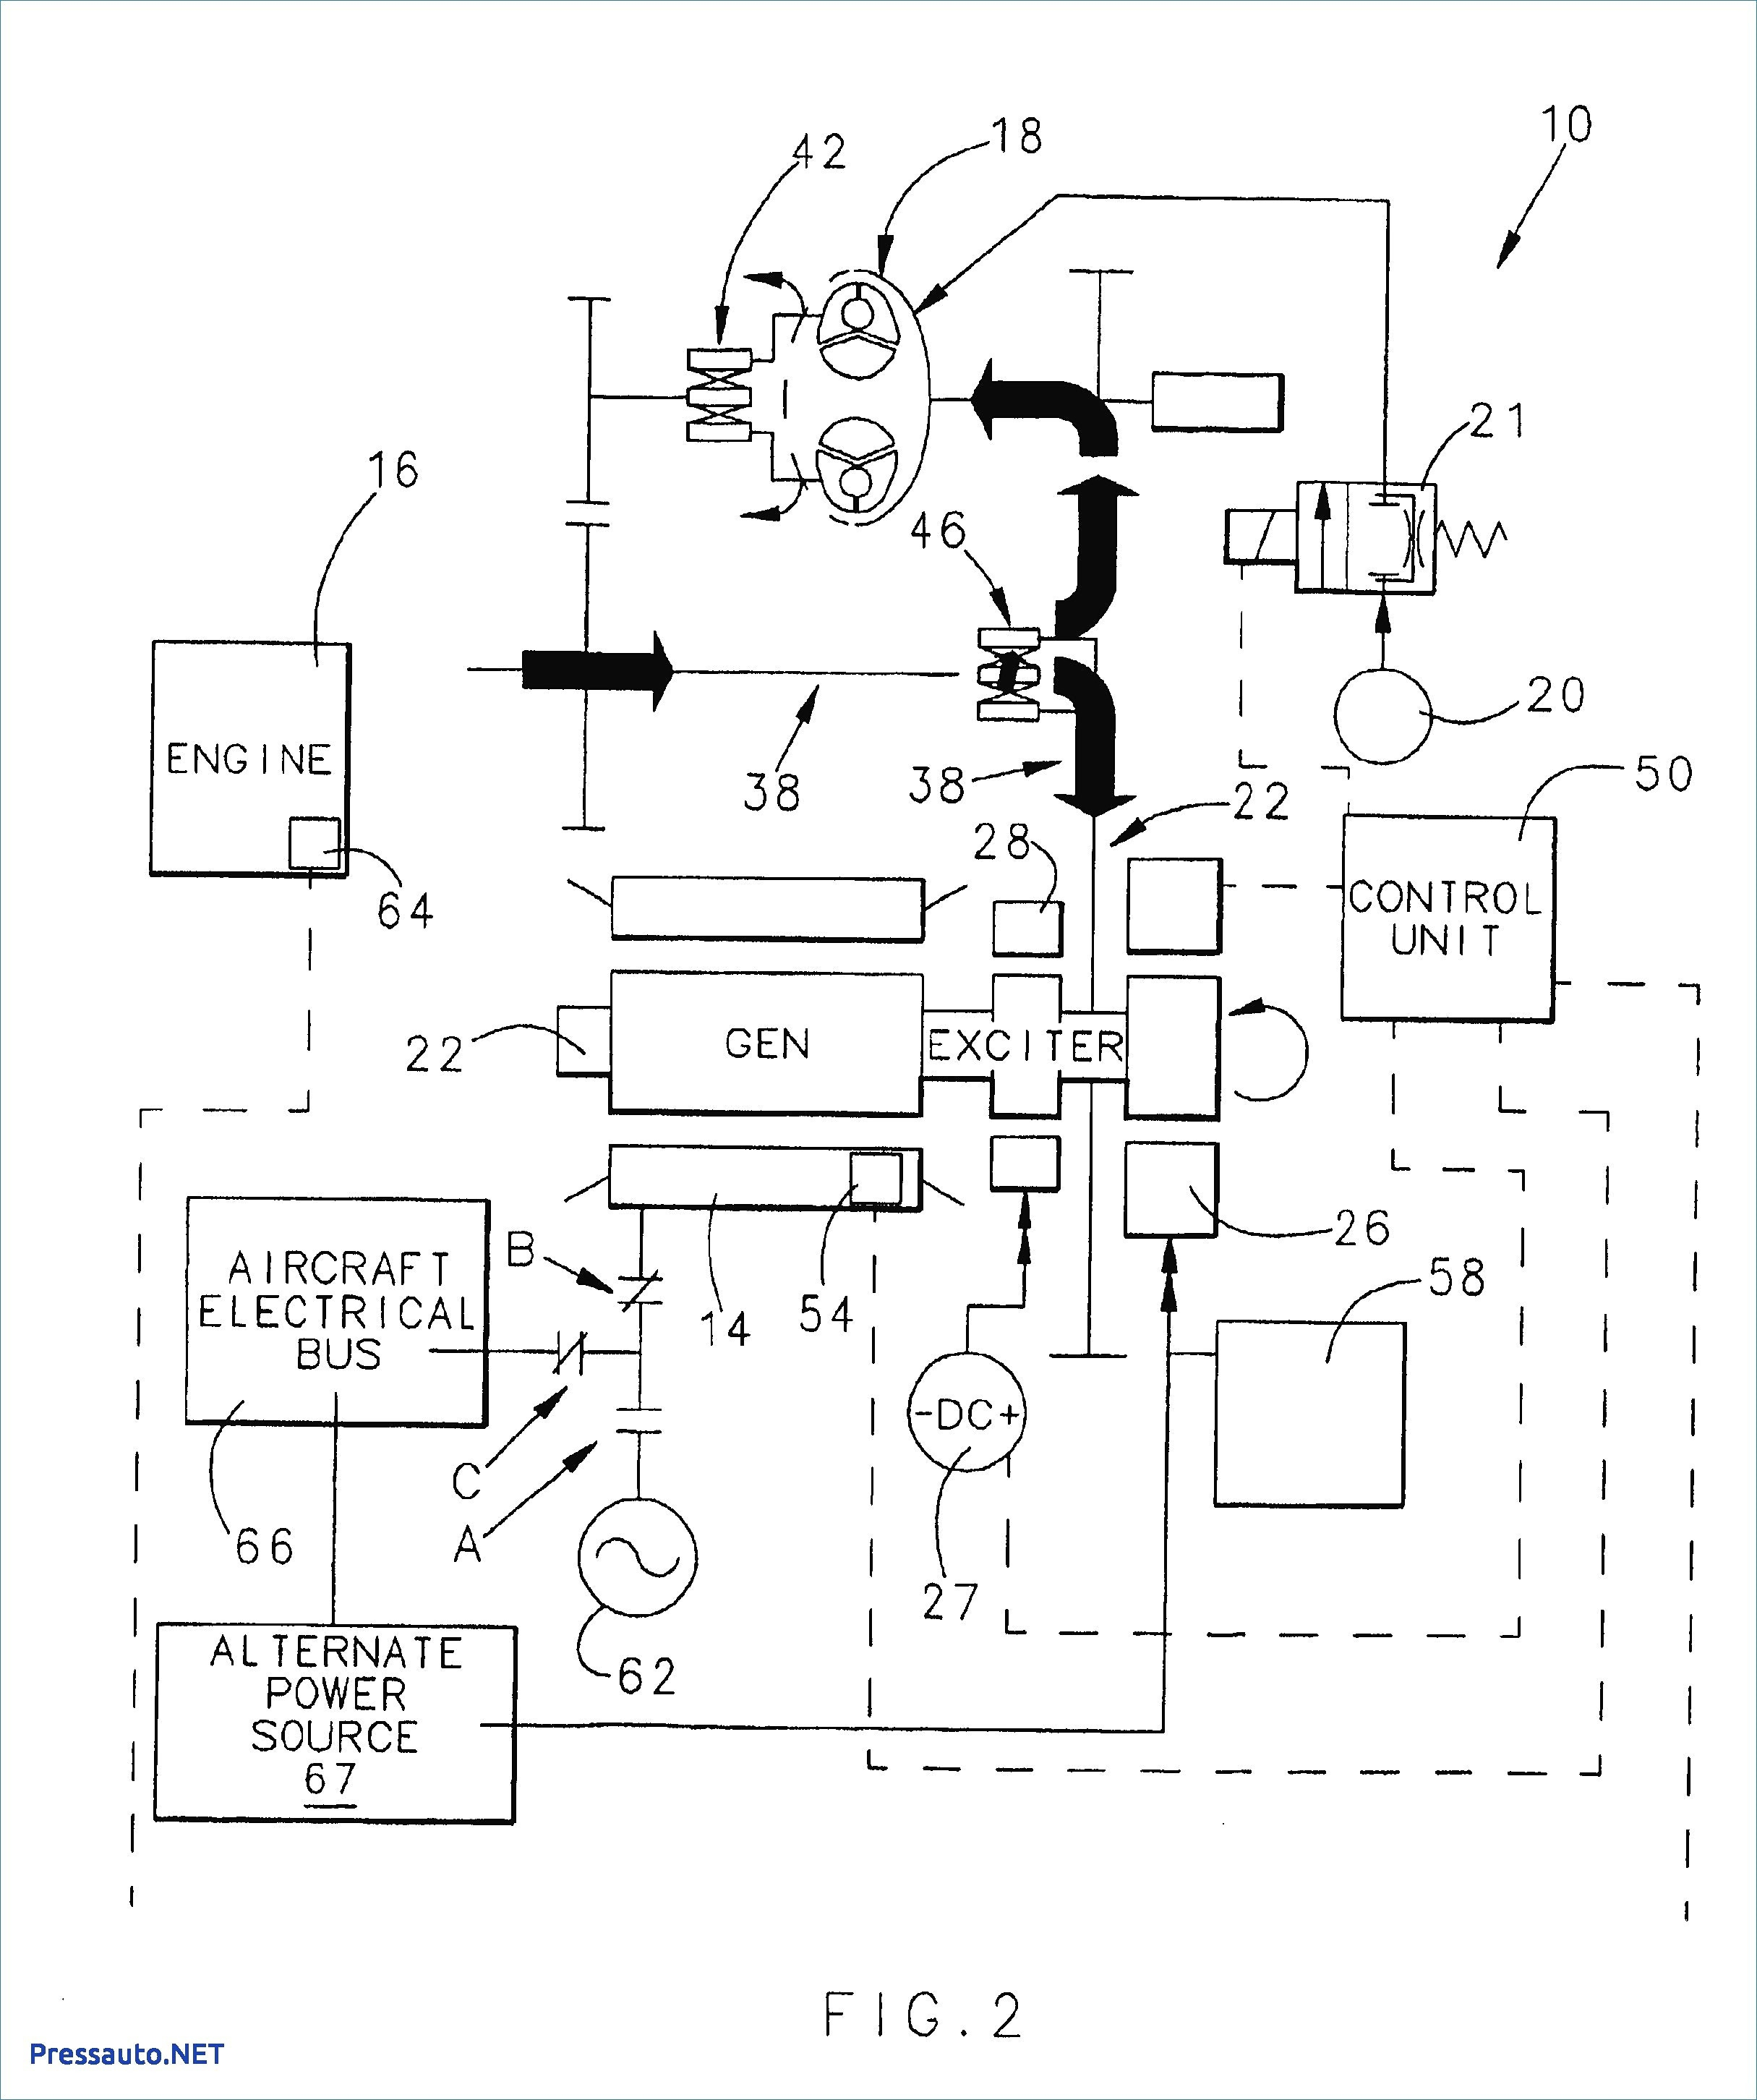 Farmall 560 Wiring Diagram - Wiring Diagram Schematics on